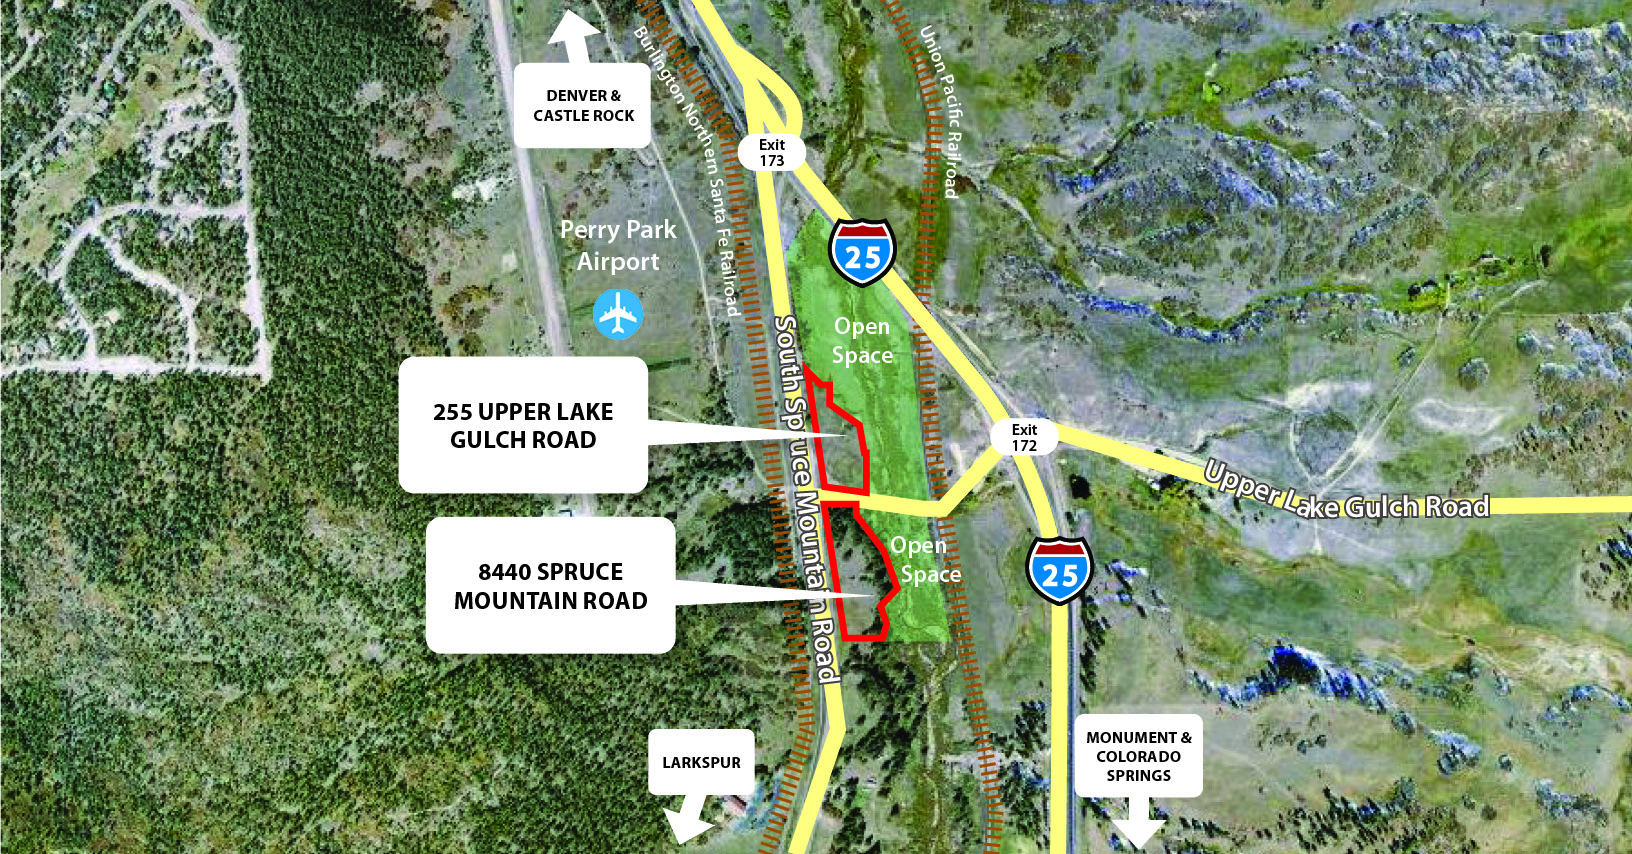 NavPoint Real Estate Group sells 6.967 acres of Land in Larkspur for $650,000